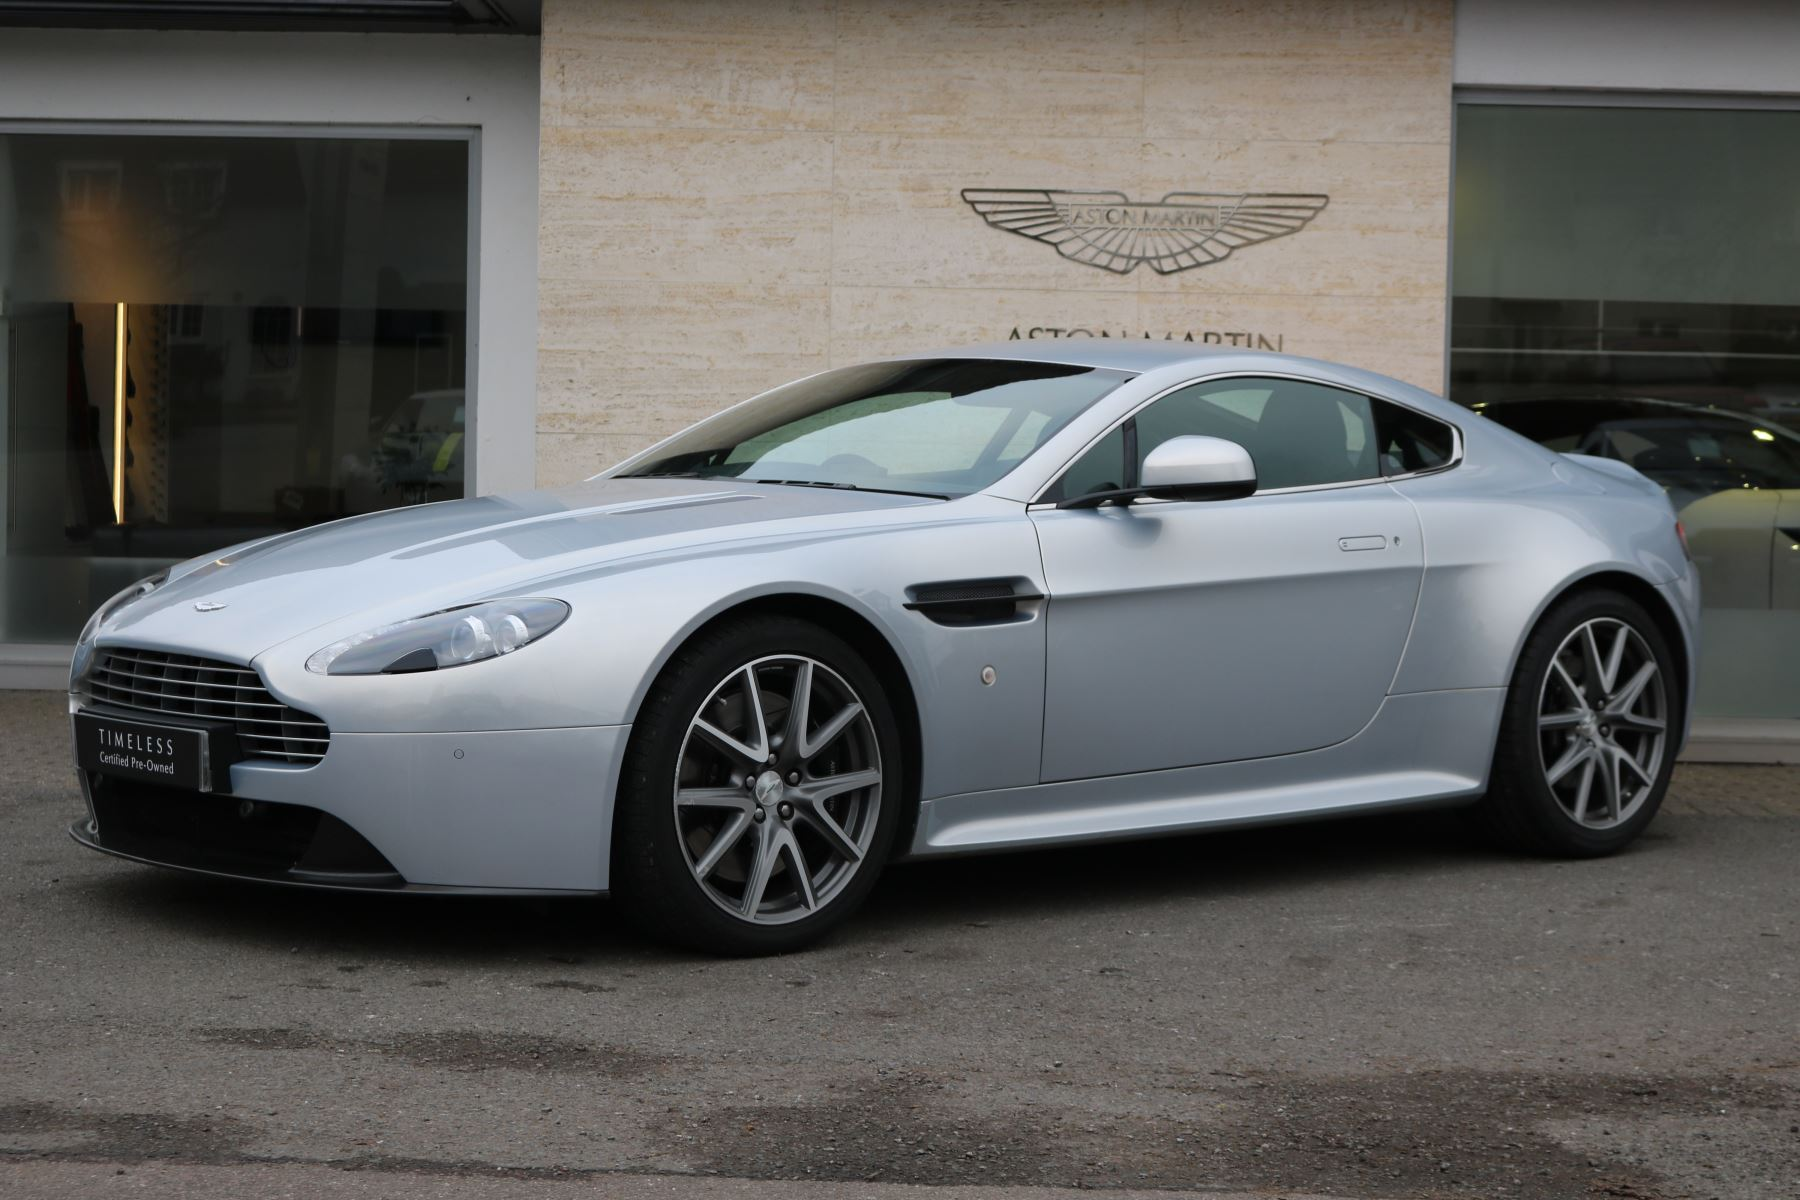 Used Aston Martin Welwyn Cars For Sale Grange